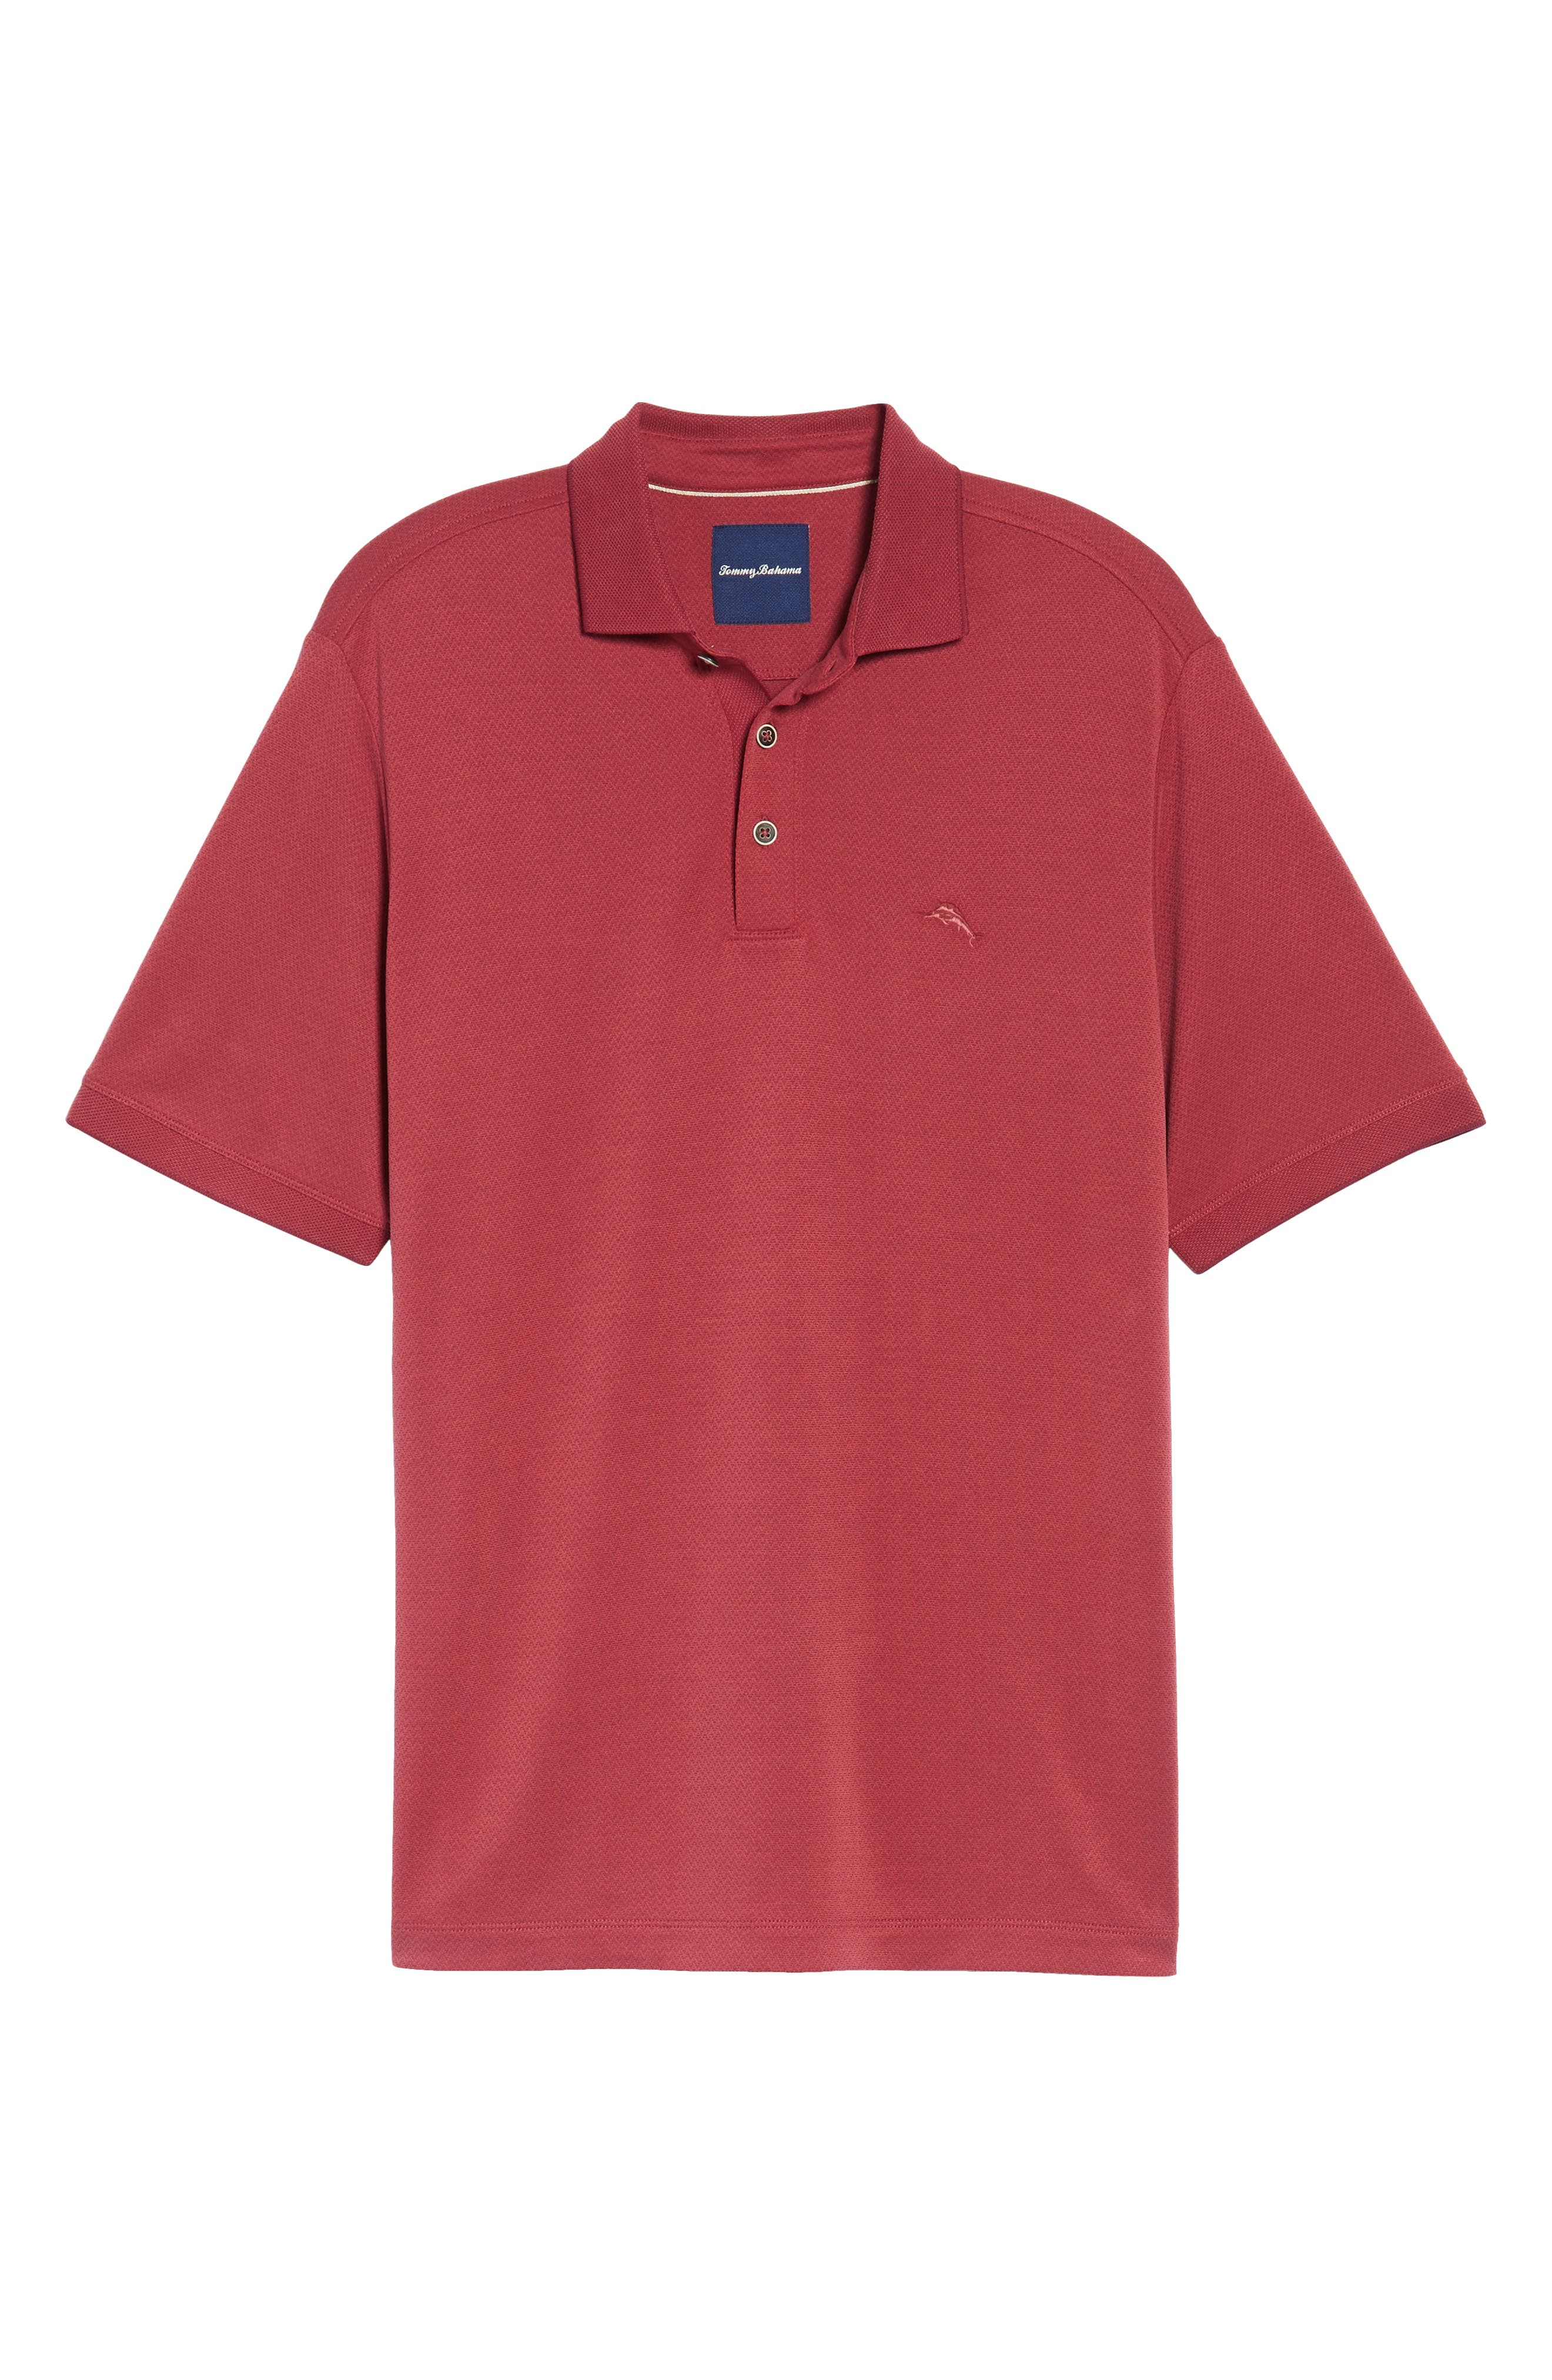 Ocean View Short Sleeve Jacquard Polo,                             Alternate thumbnail 6, color,                             Beet Red